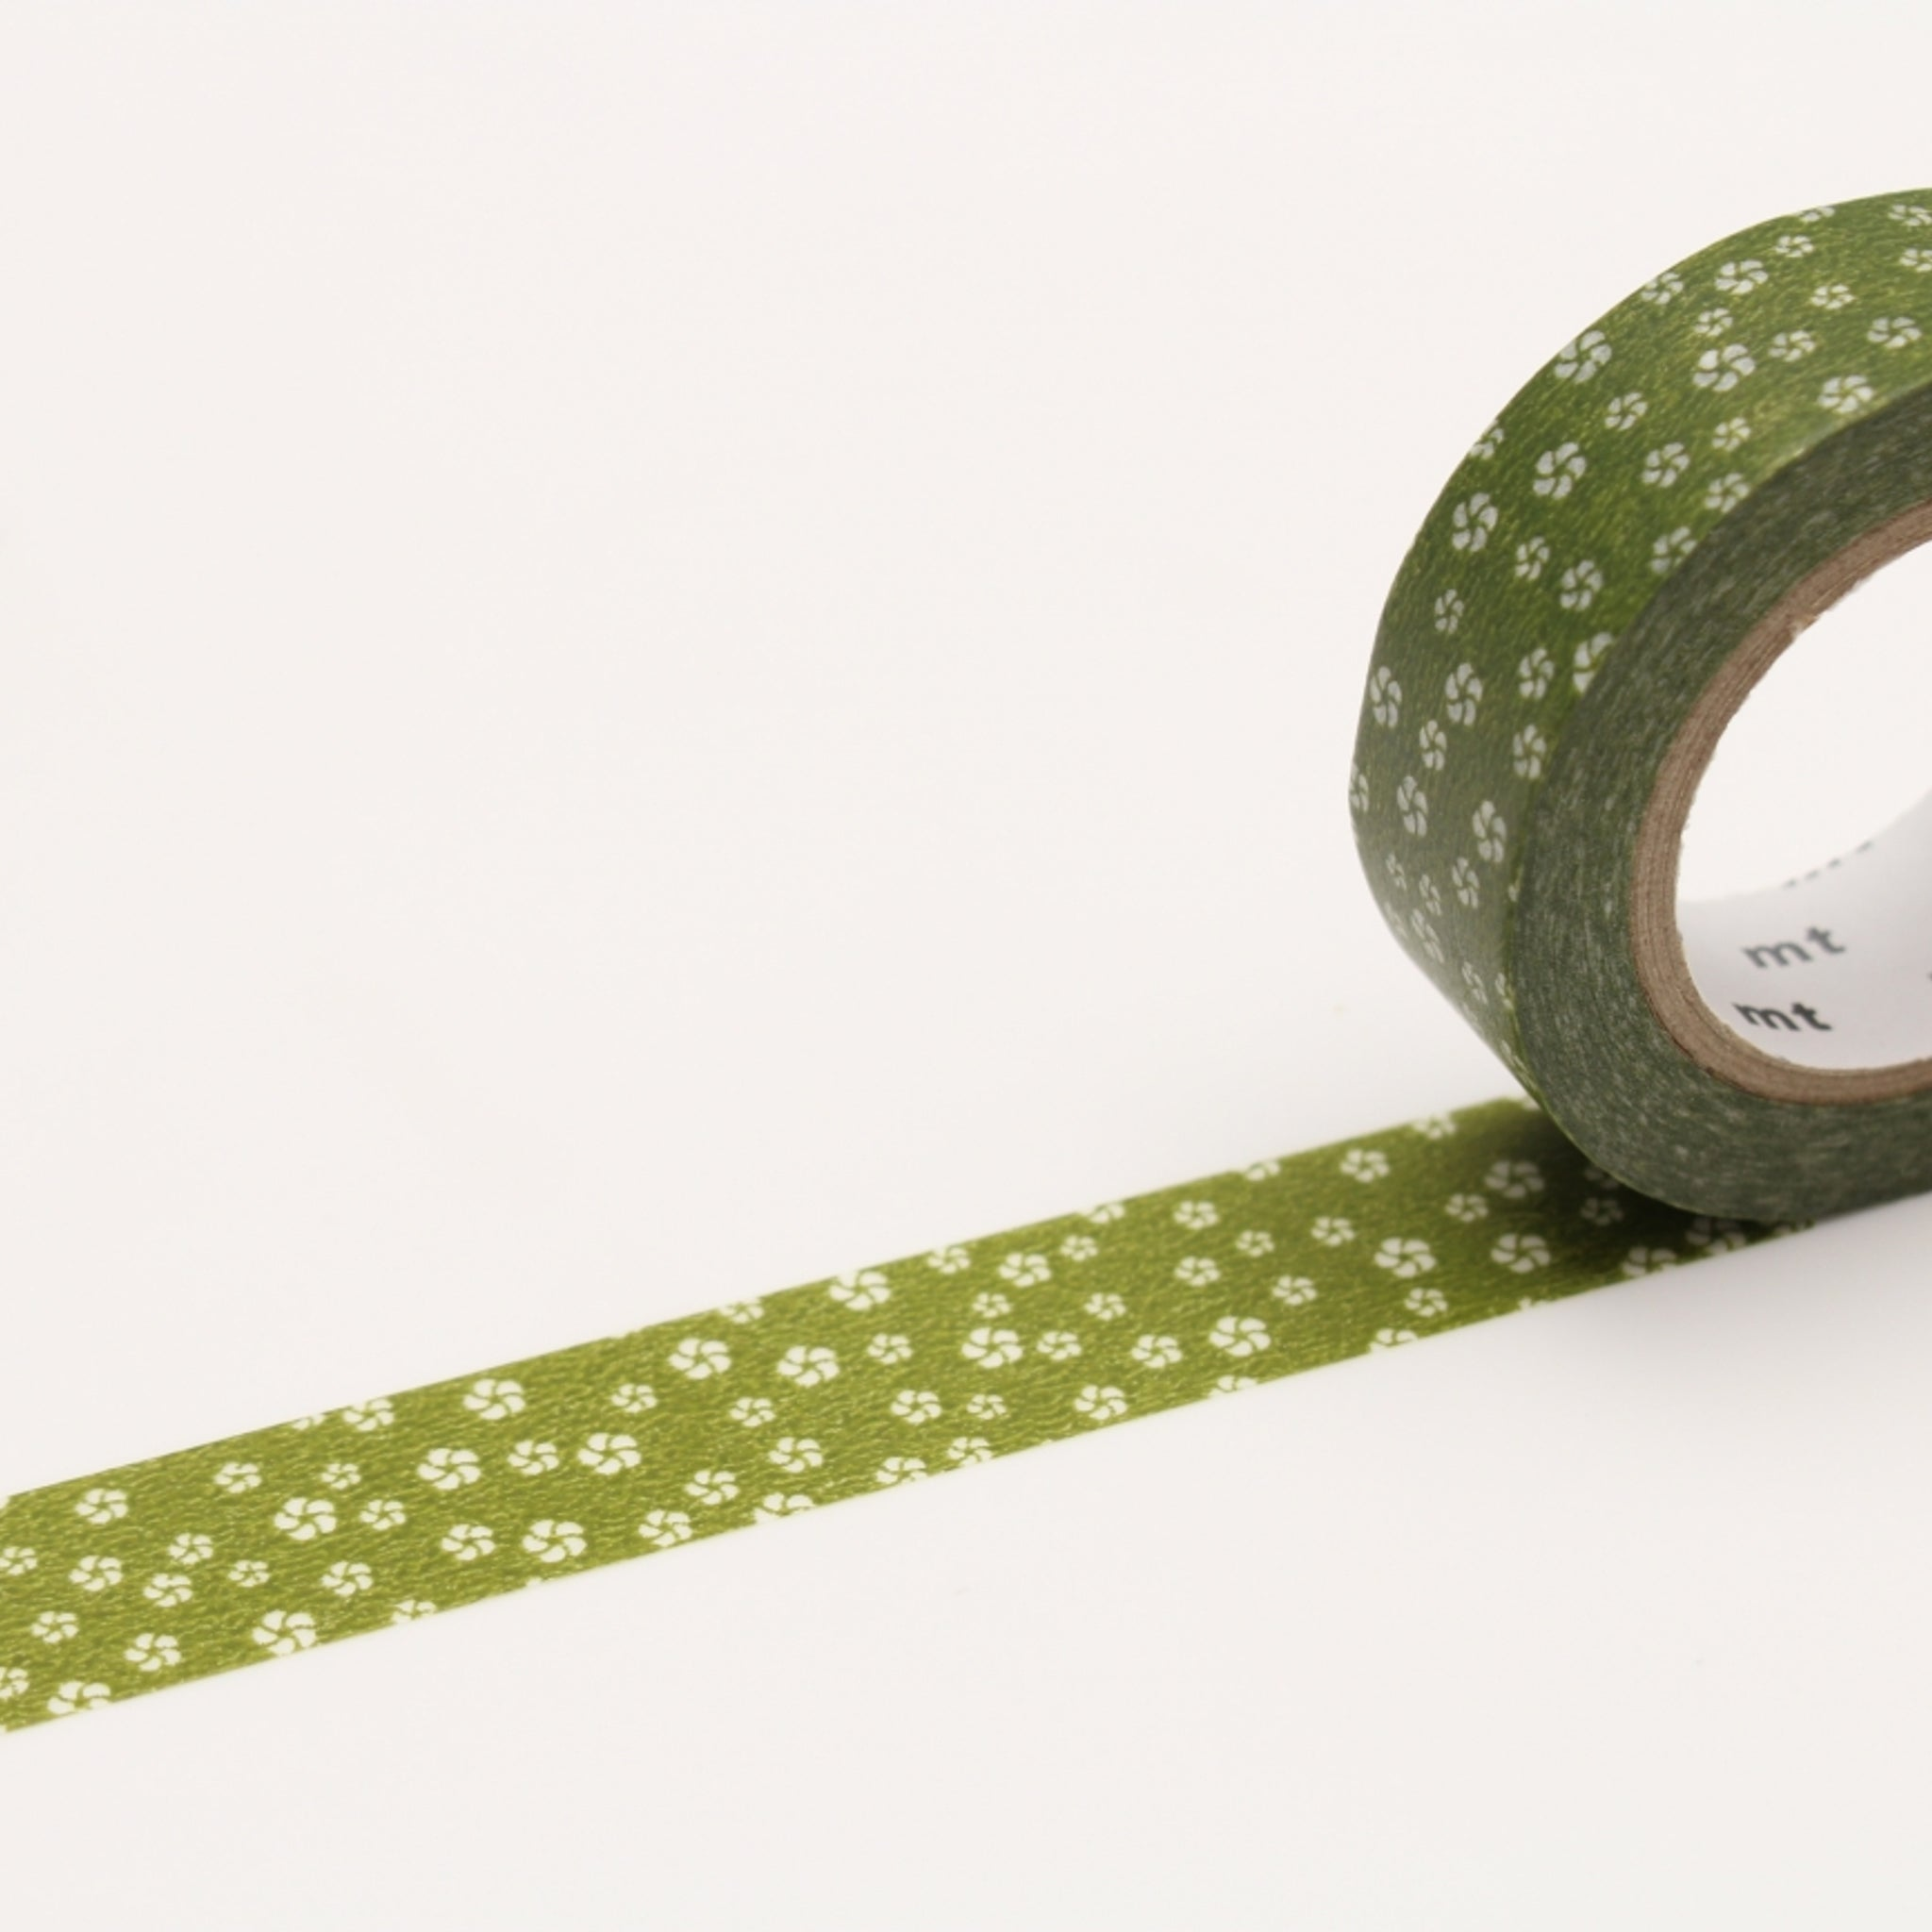 MT Deco Washi Tape Nejiriume Uguisu